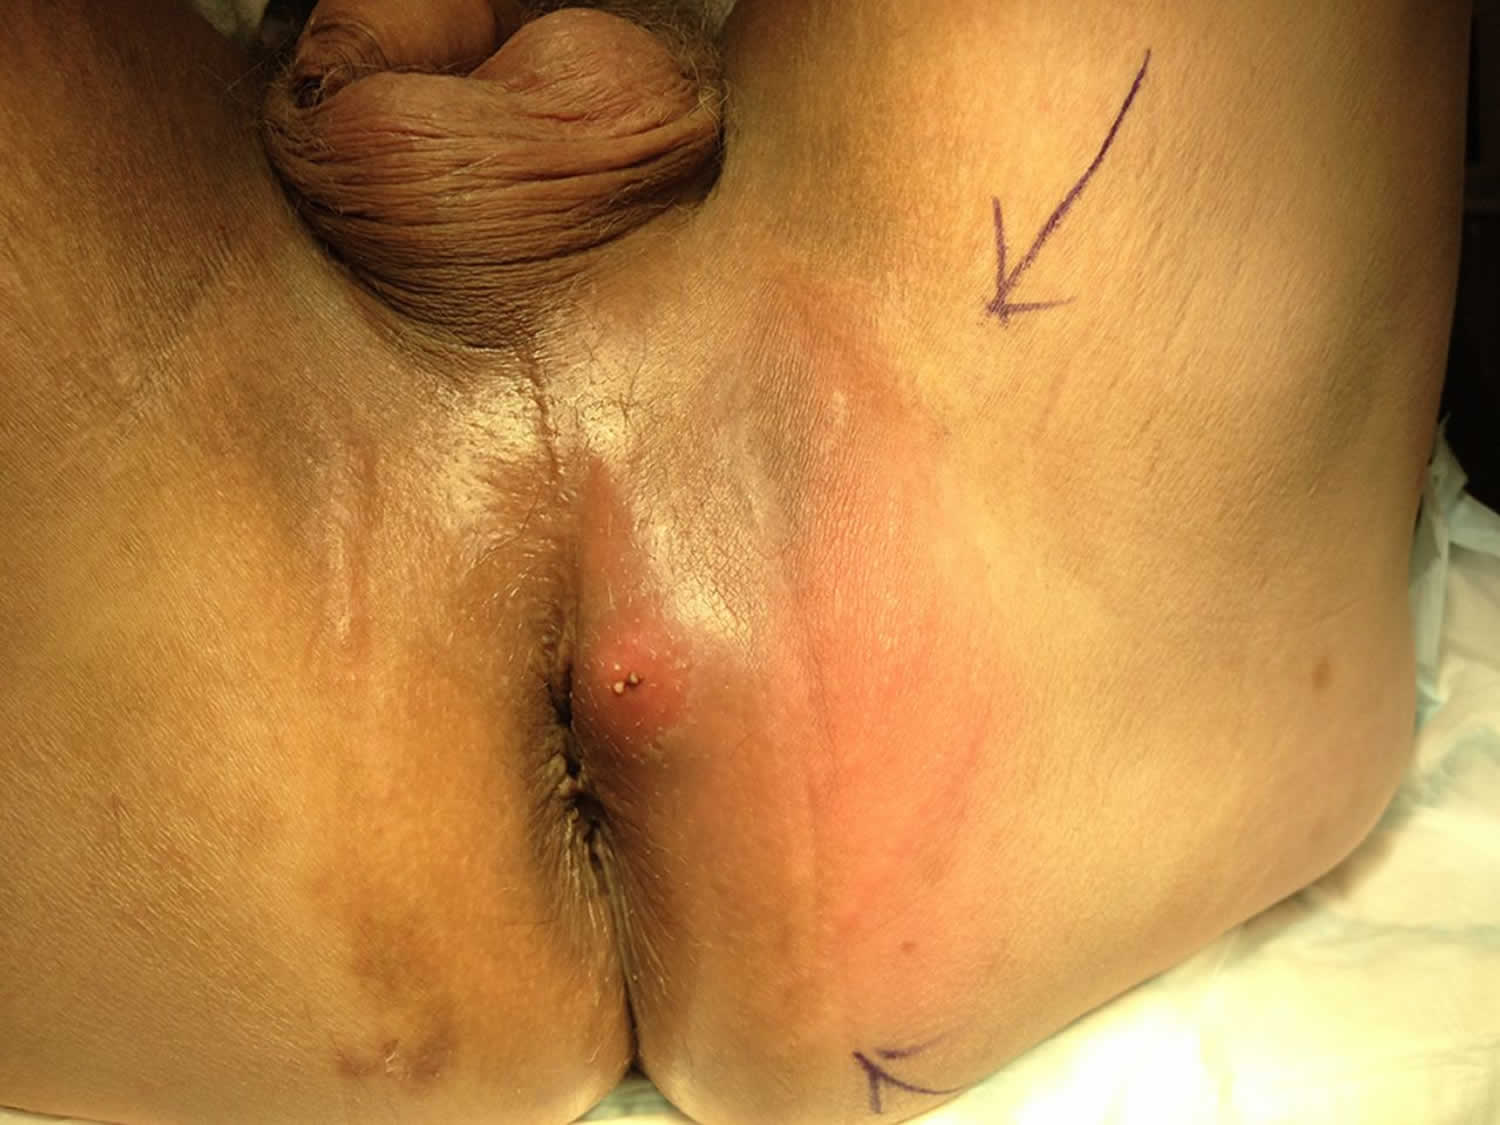 Pari anal abcess picture 747